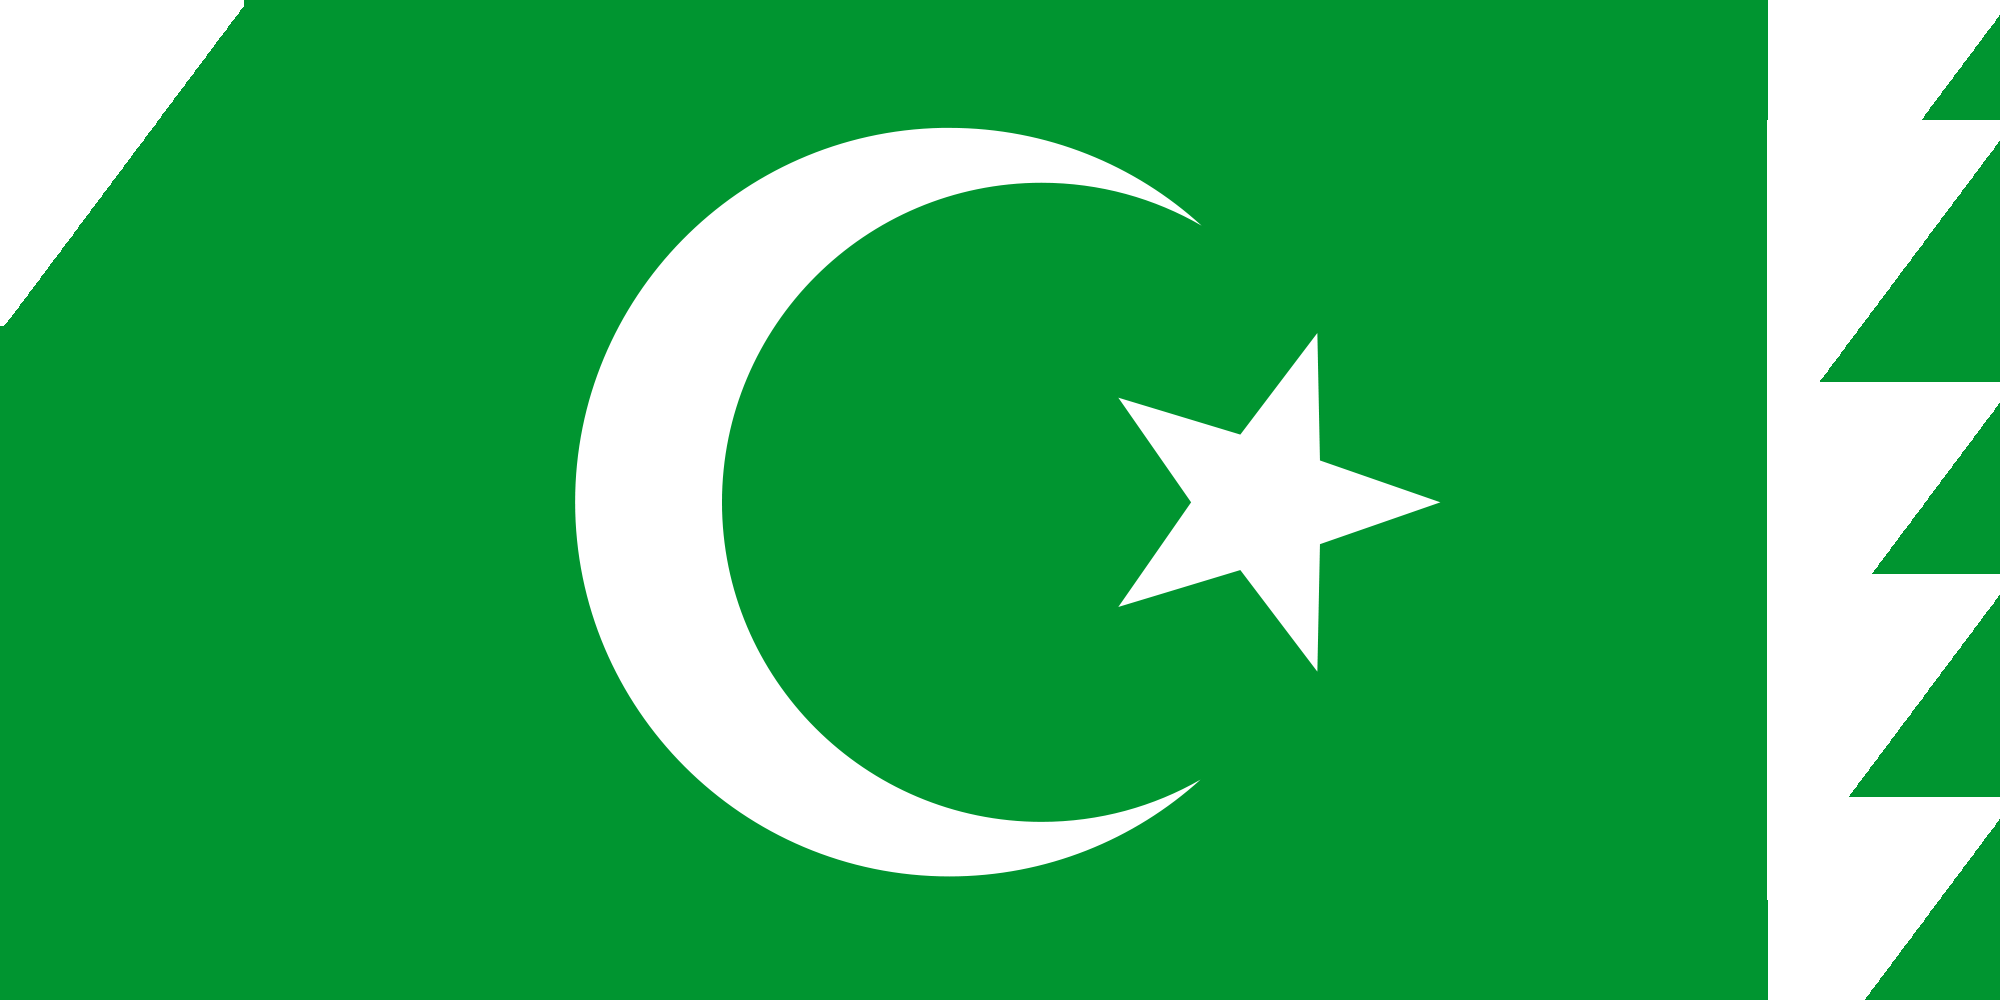 Islam Colors 28 Images Islam Color Sorting Pulling The Slaver Flags Of Islam And Africa 10